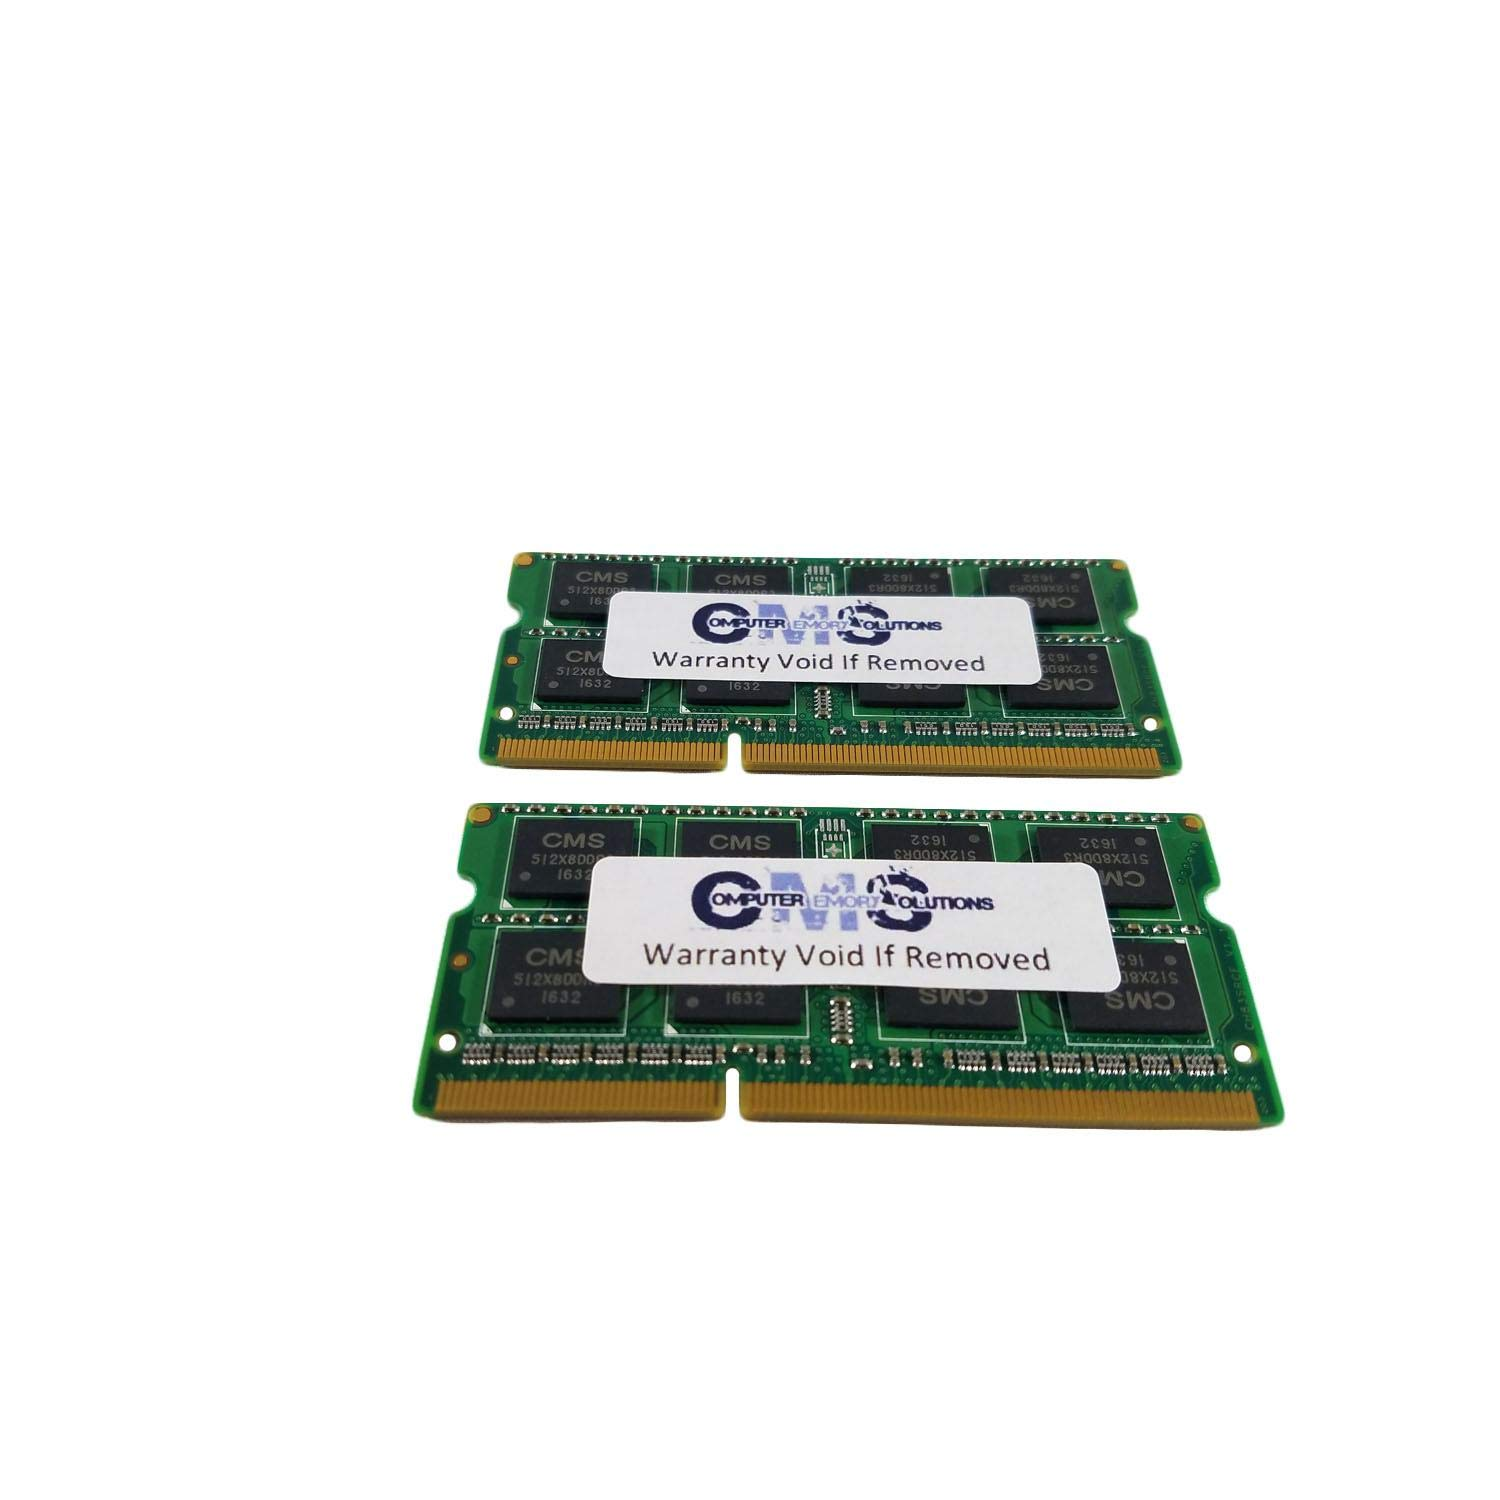 BY CMS A7 2X8GB RAM Memory compatible with Dell Inspiron 14 16GB 5447